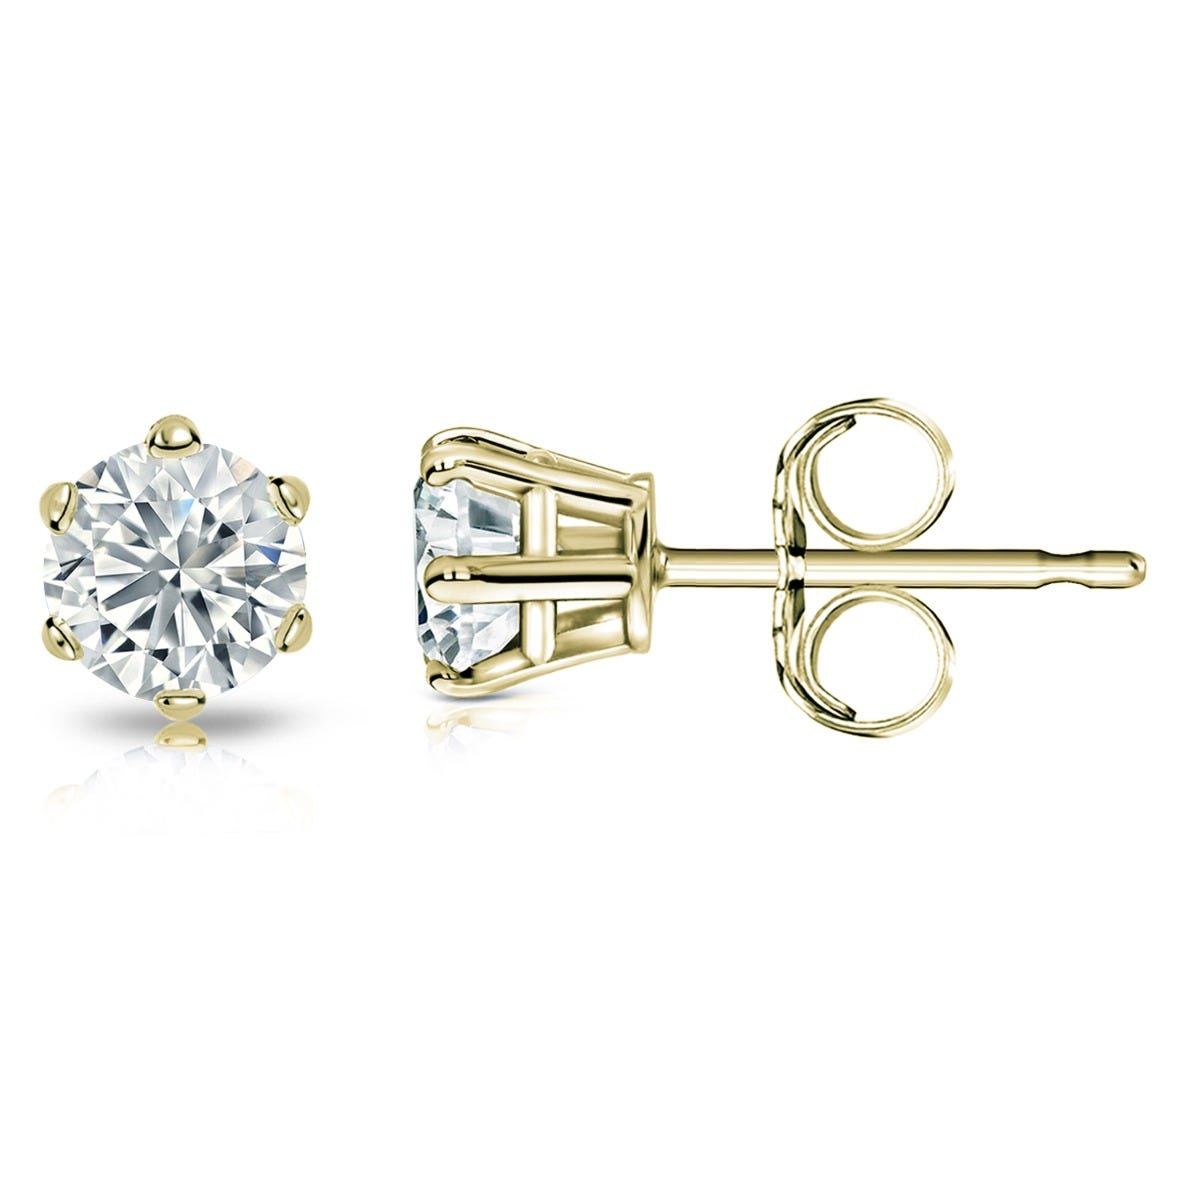 Round Diamond 1ctw. (IJ-SI1) Solitaire Stud 6-Prong Earrings in 14K Yellow Gold